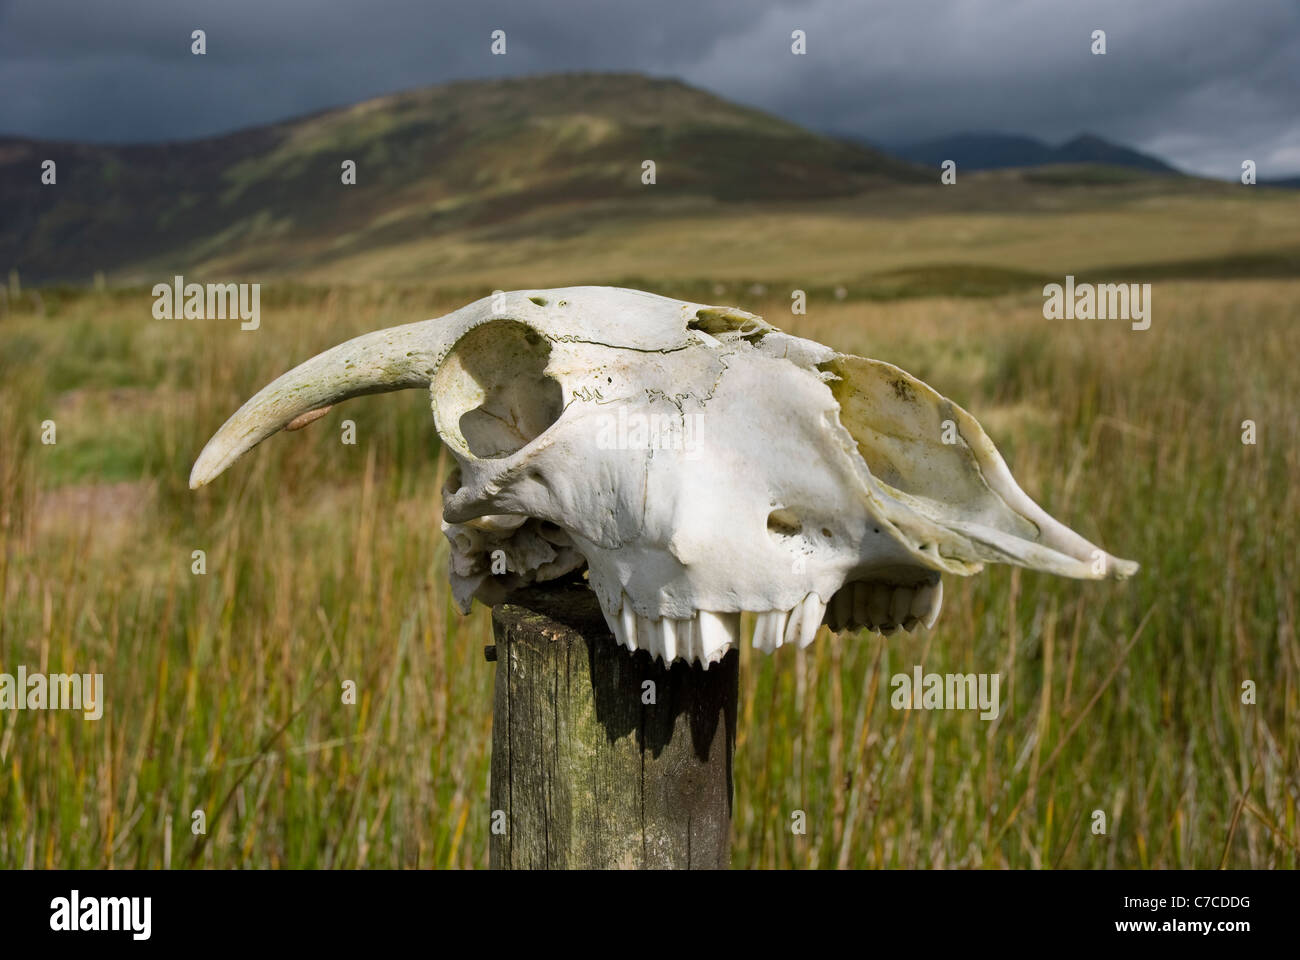 Skull of a sheep on a wooden fence post. Stock Photo